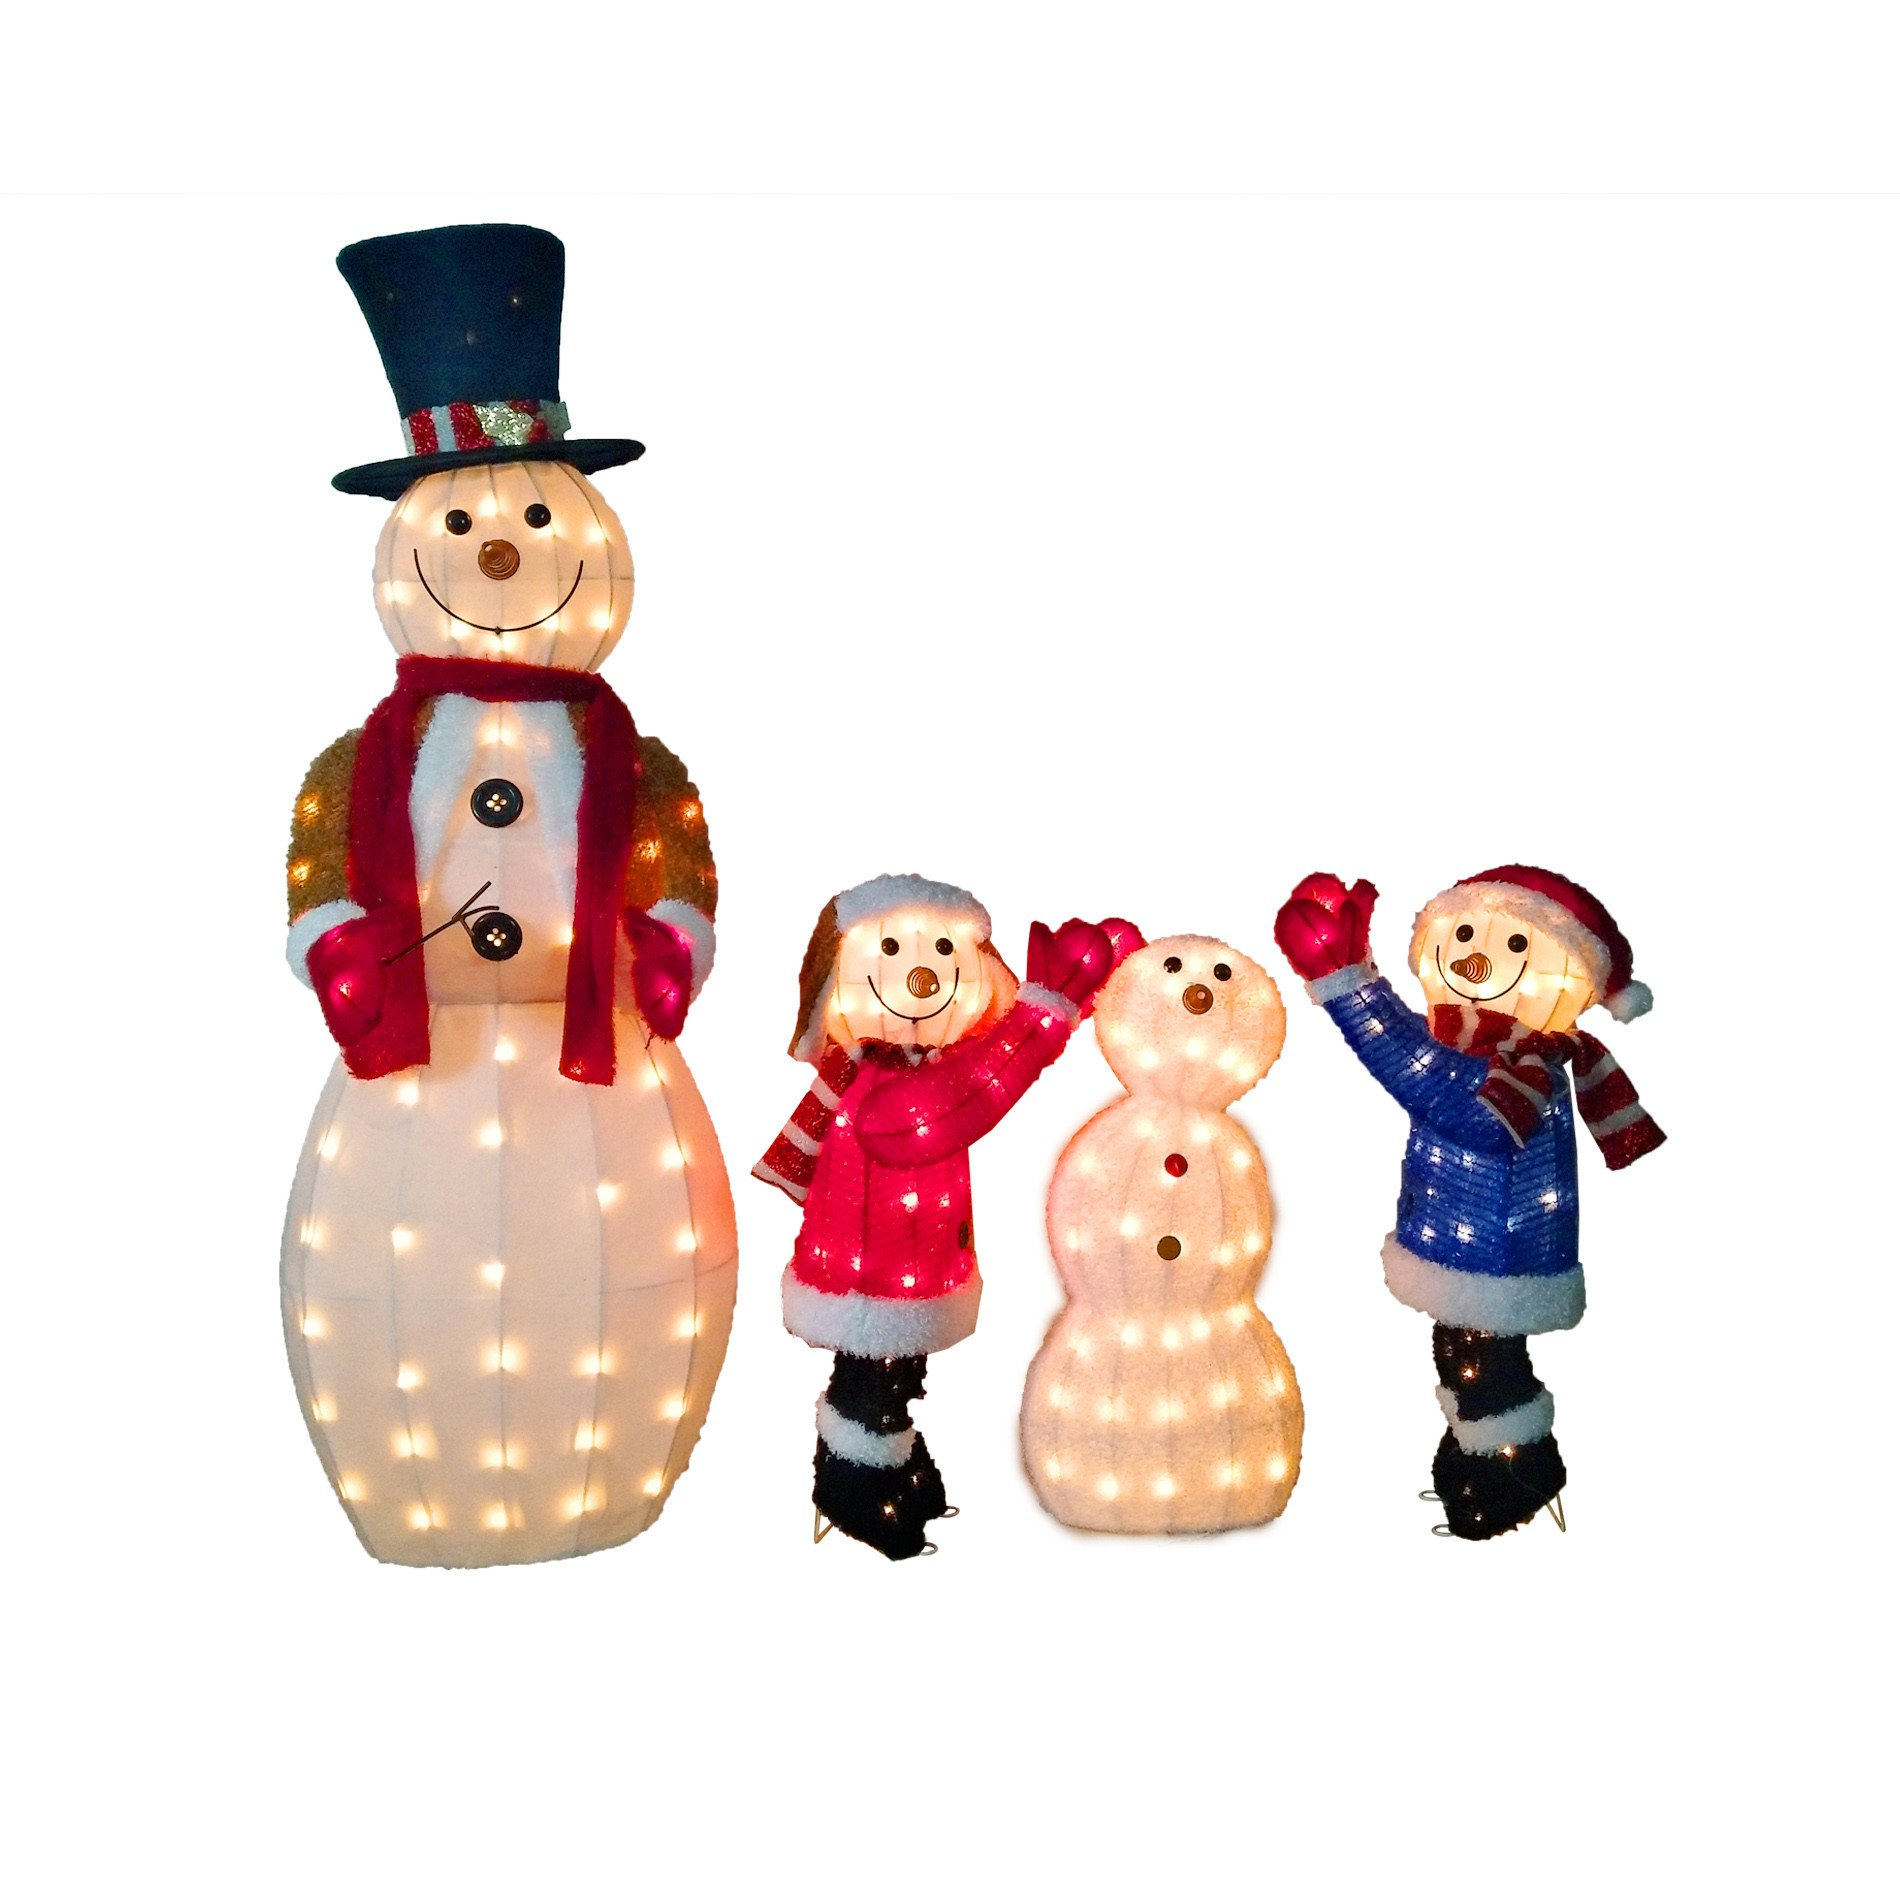 "Pre Lit Snowman Outdoor Decor Luxury 52"" Snowman Family Pre Lit Outdoor Christmas Yard Decoration Festive Home Decor"